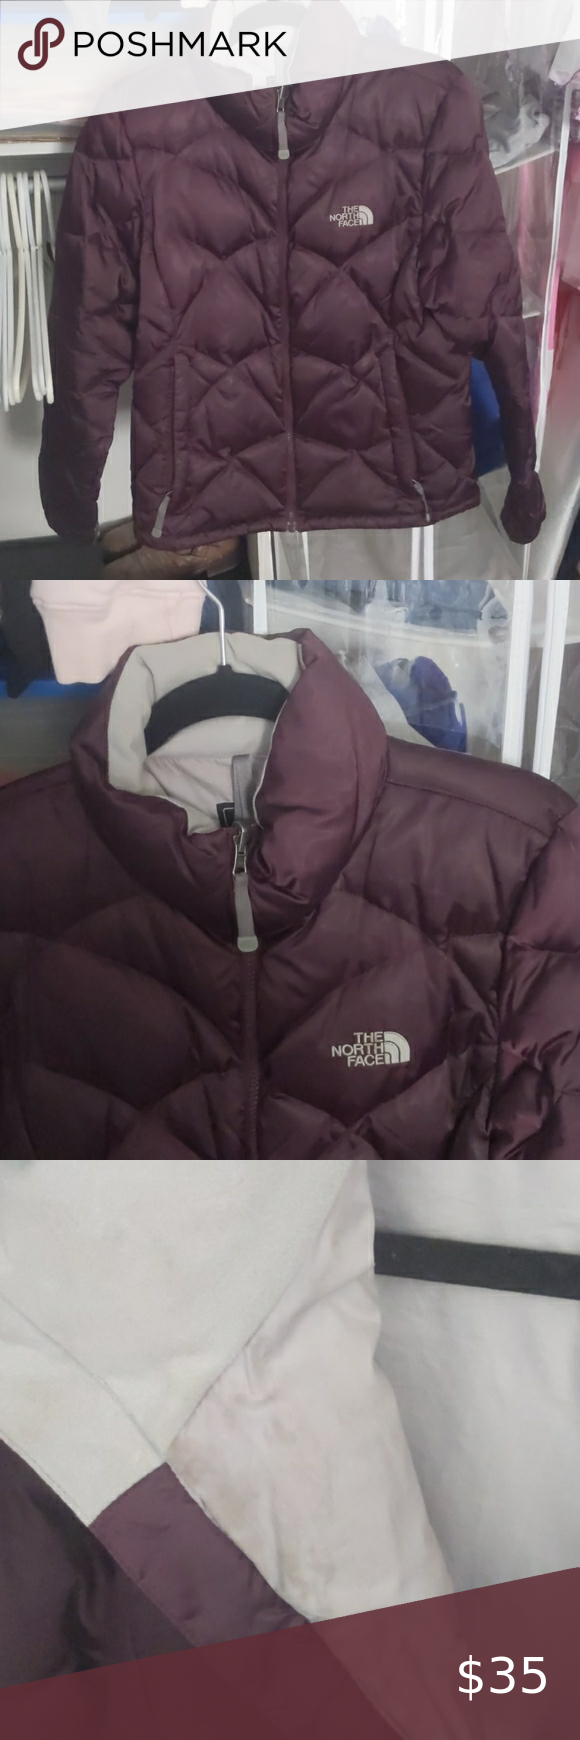 North Face Jacket In 2020 North Face Jacket Clothes Design Jackets [ 1740 x 580 Pixel ]